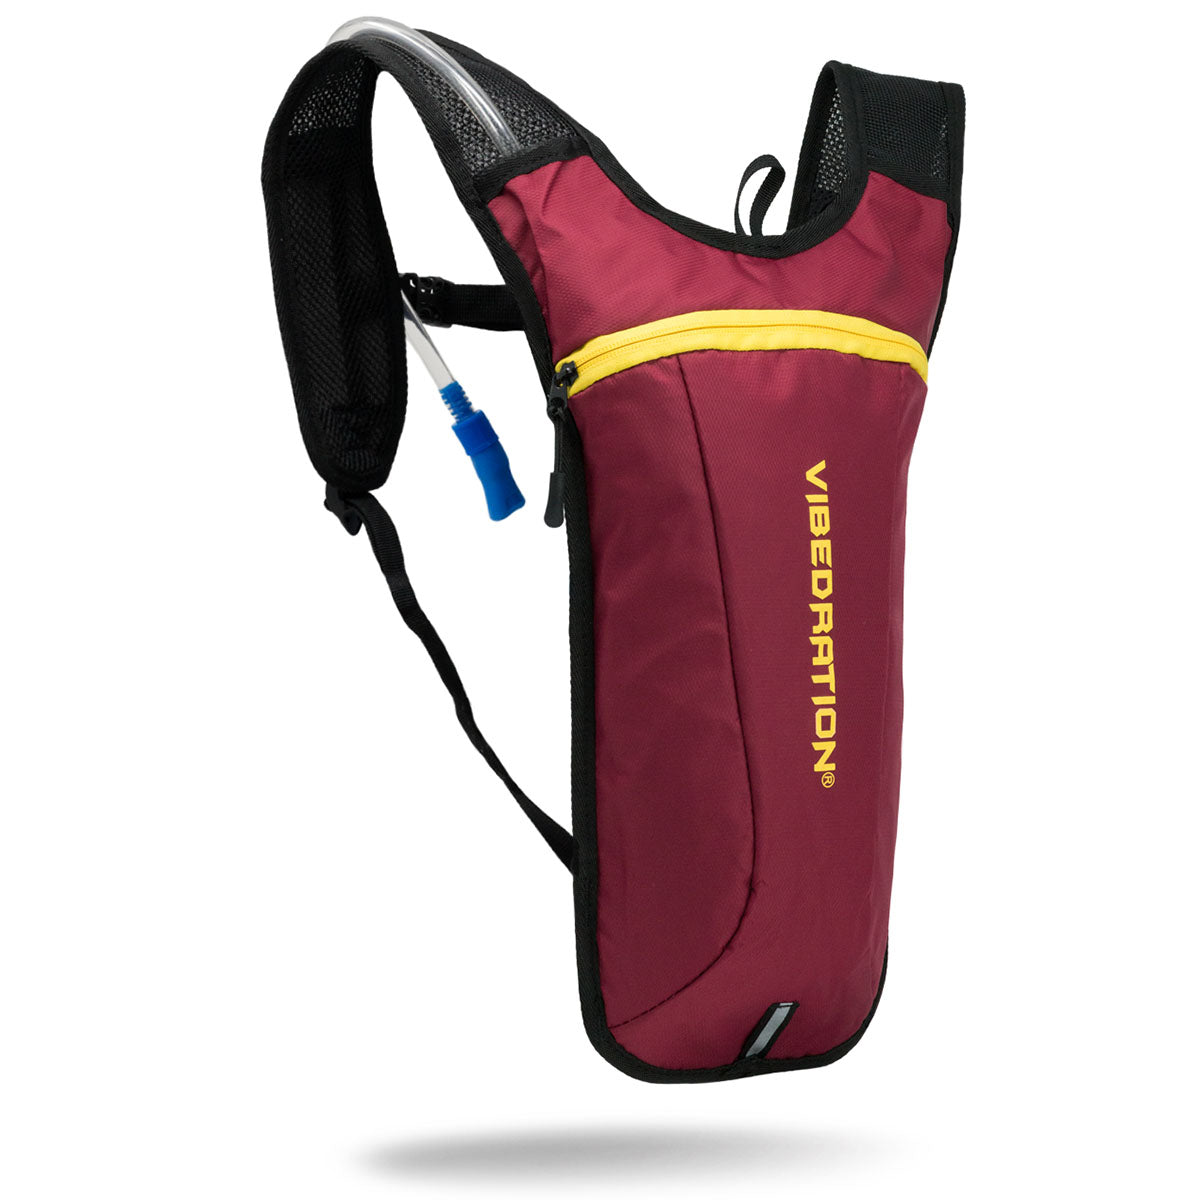 Maroon and gold hydration pack two liter hydration pack for raves